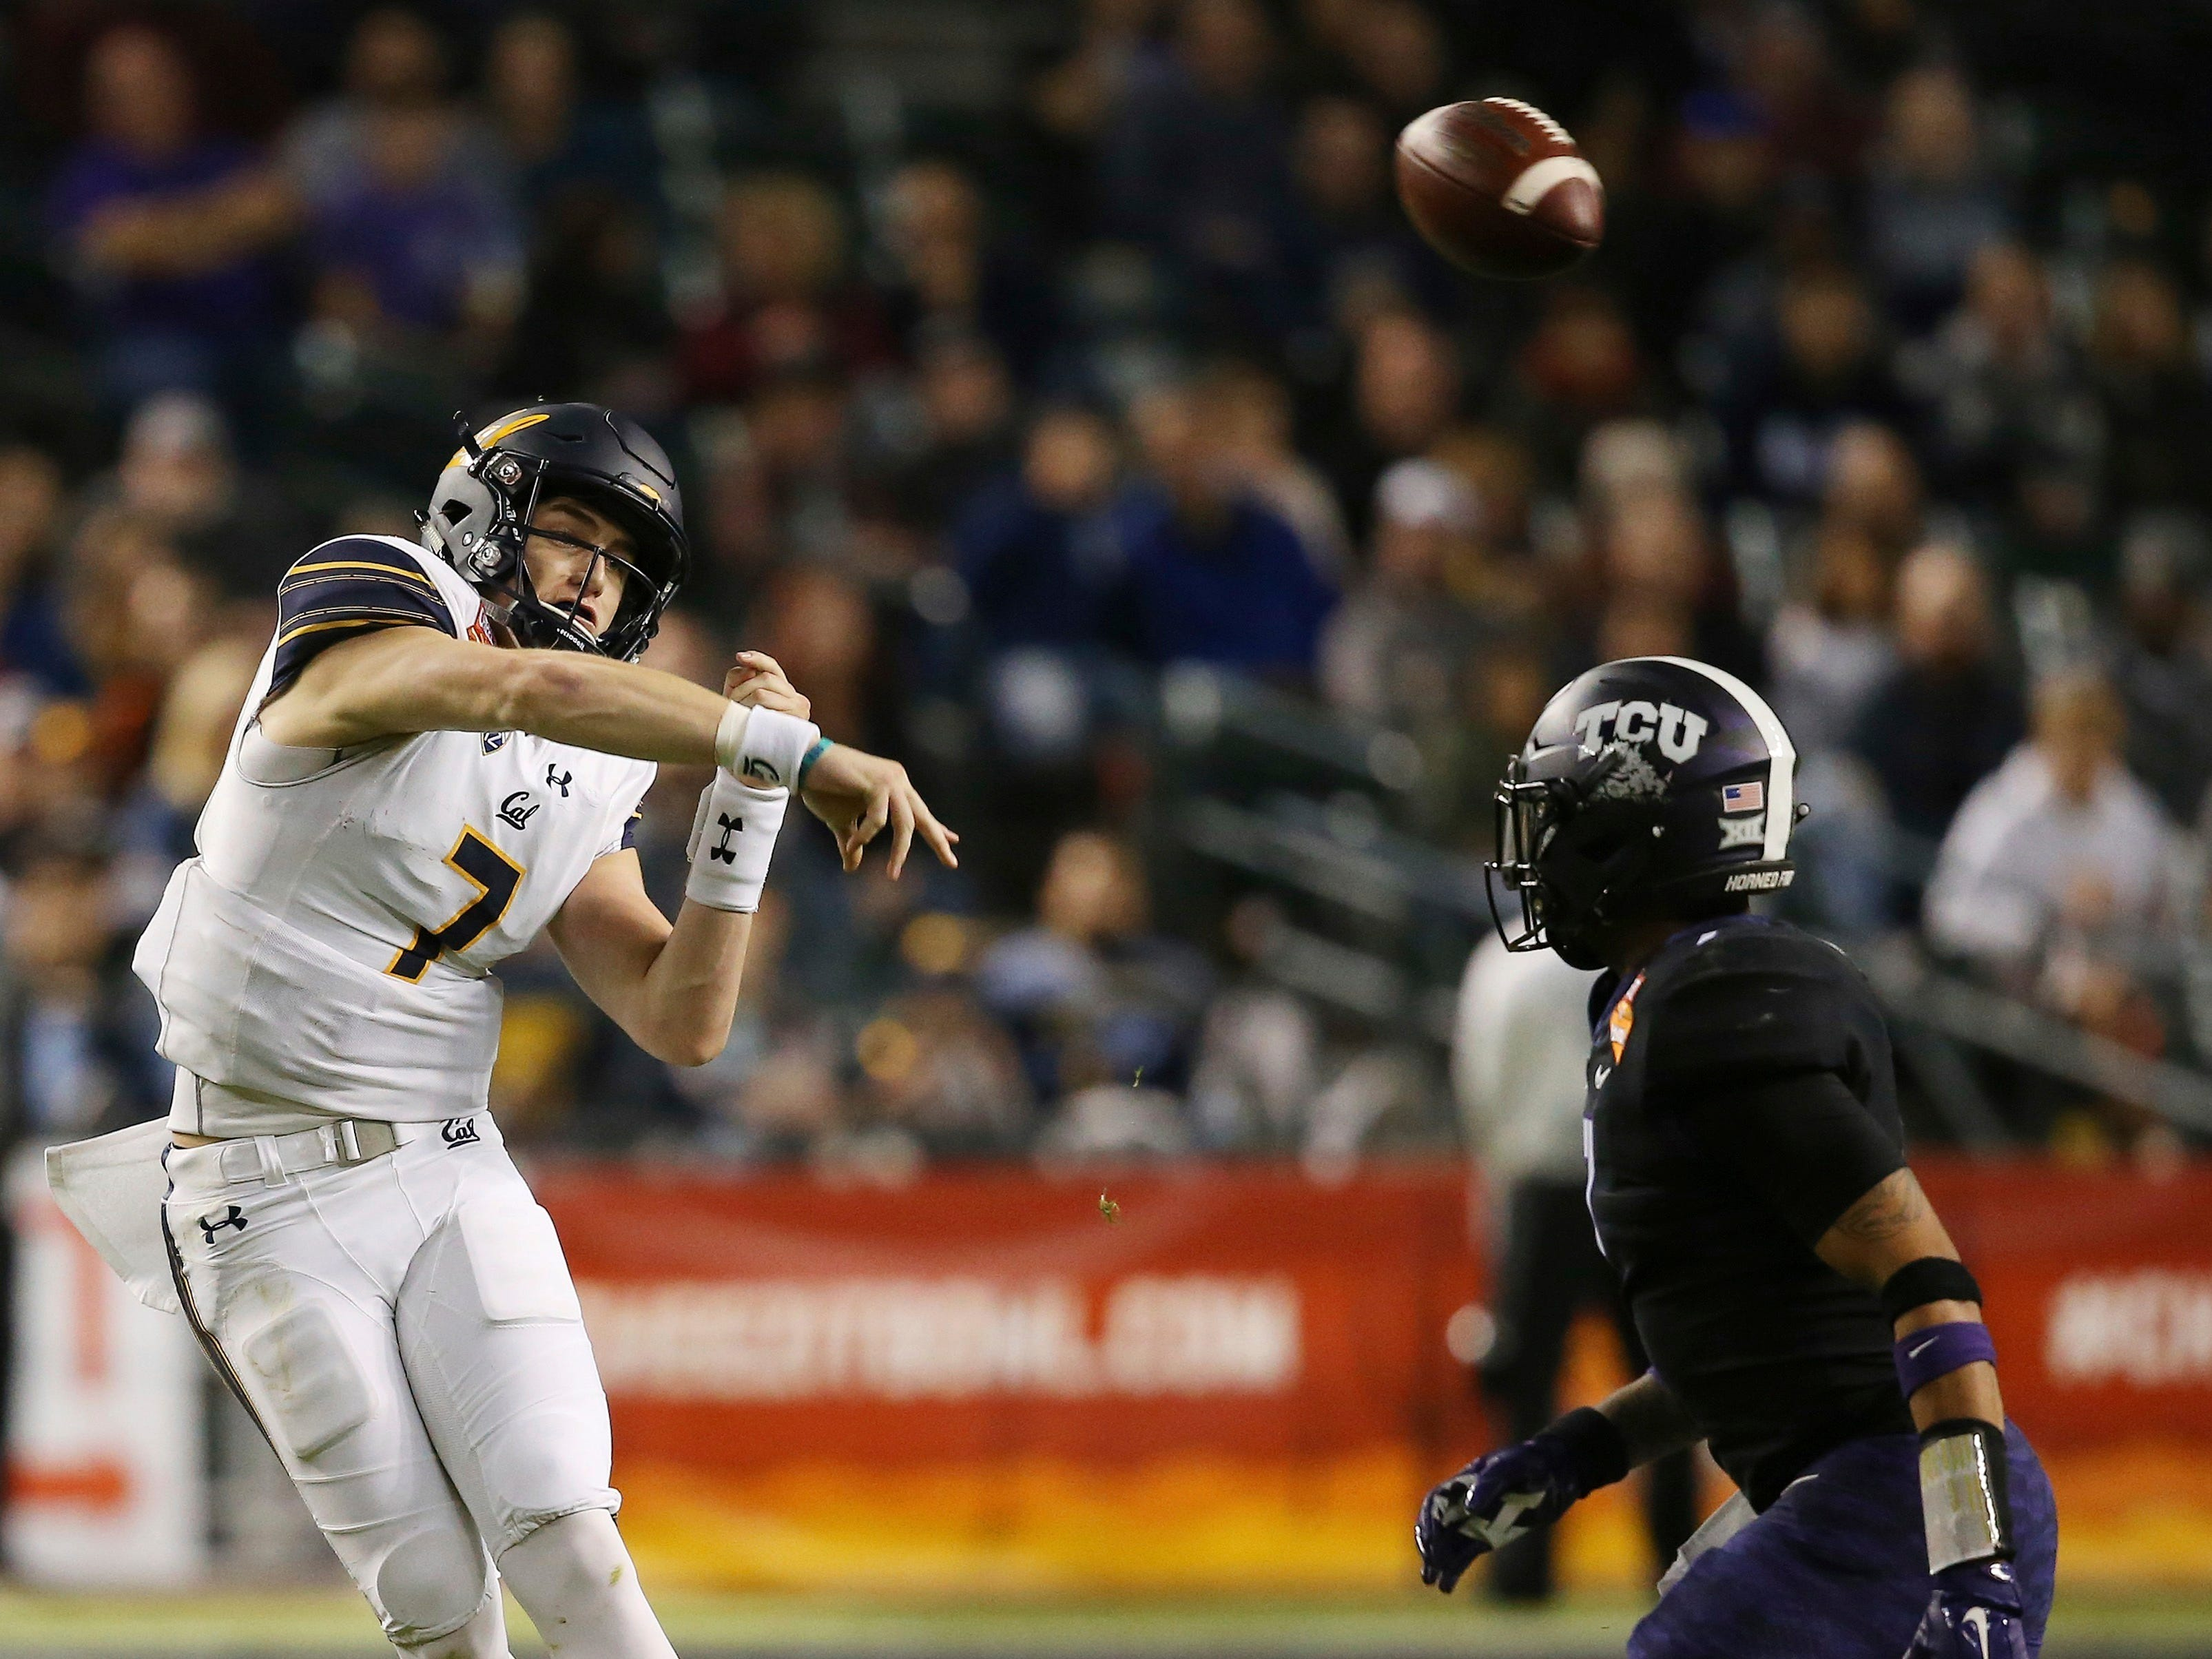 California quarterback Chase Garbers (7) throws a pass over TCU linebacker Arico Evans, right, during the first half of the Cheez-It Bowl NCAA college football game Wednesday, Dec. 26, 2018, in Phoenix.